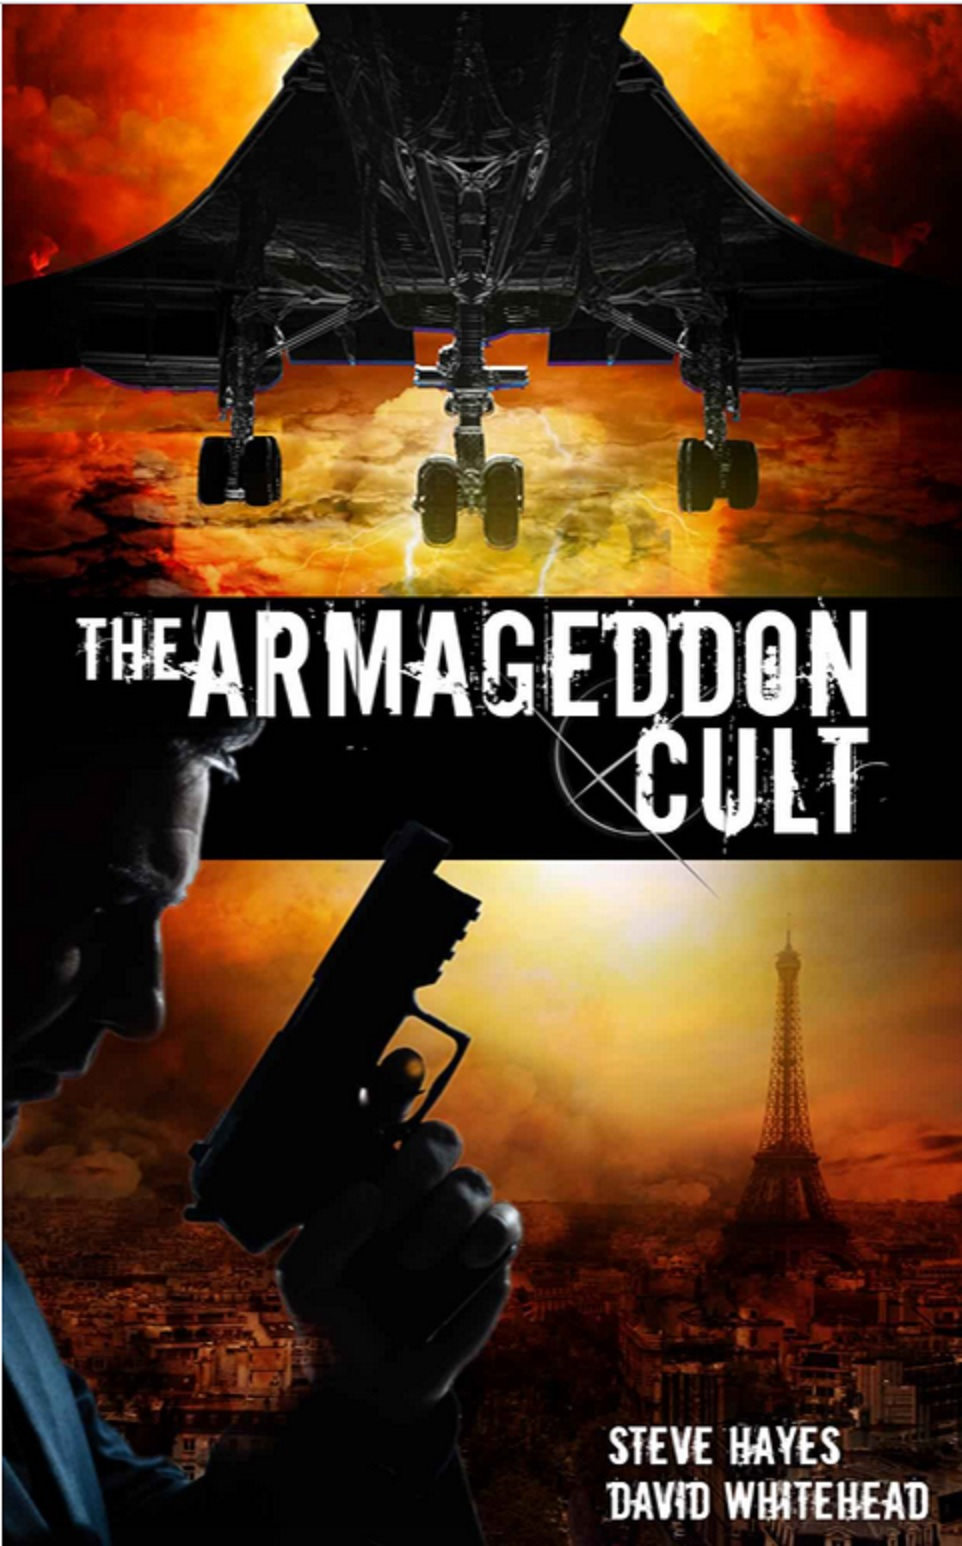 The Armageddon Cult by Steve Hayes and David Whitehead